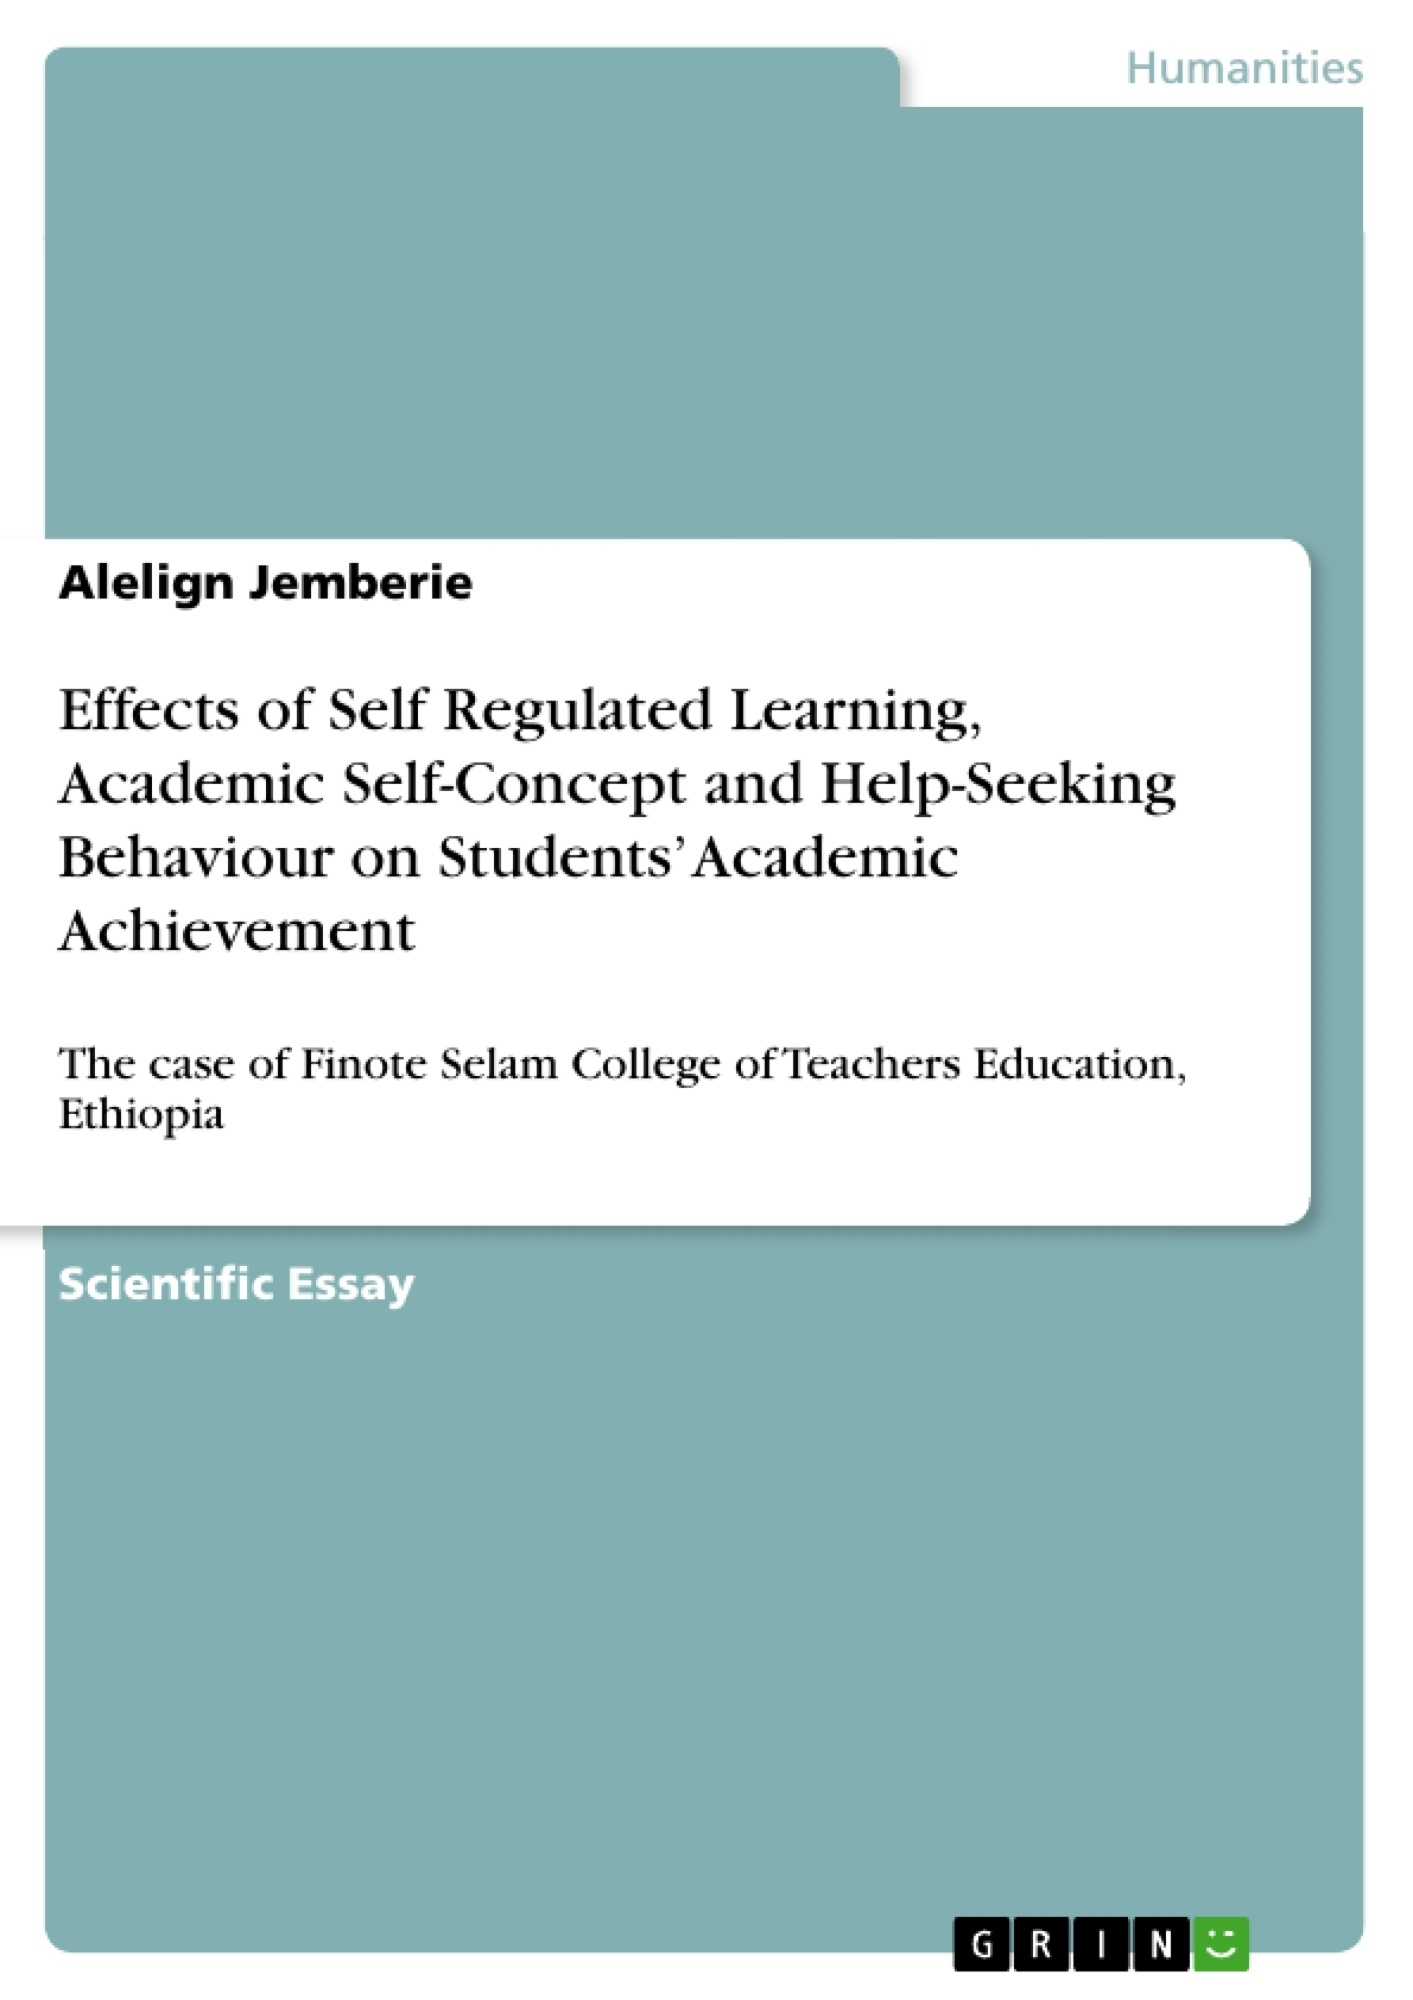 Title: Effects of Self Regulated Learning, Academic Self-Concept and Help-Seeking Behaviour on Students' Academic Achievement